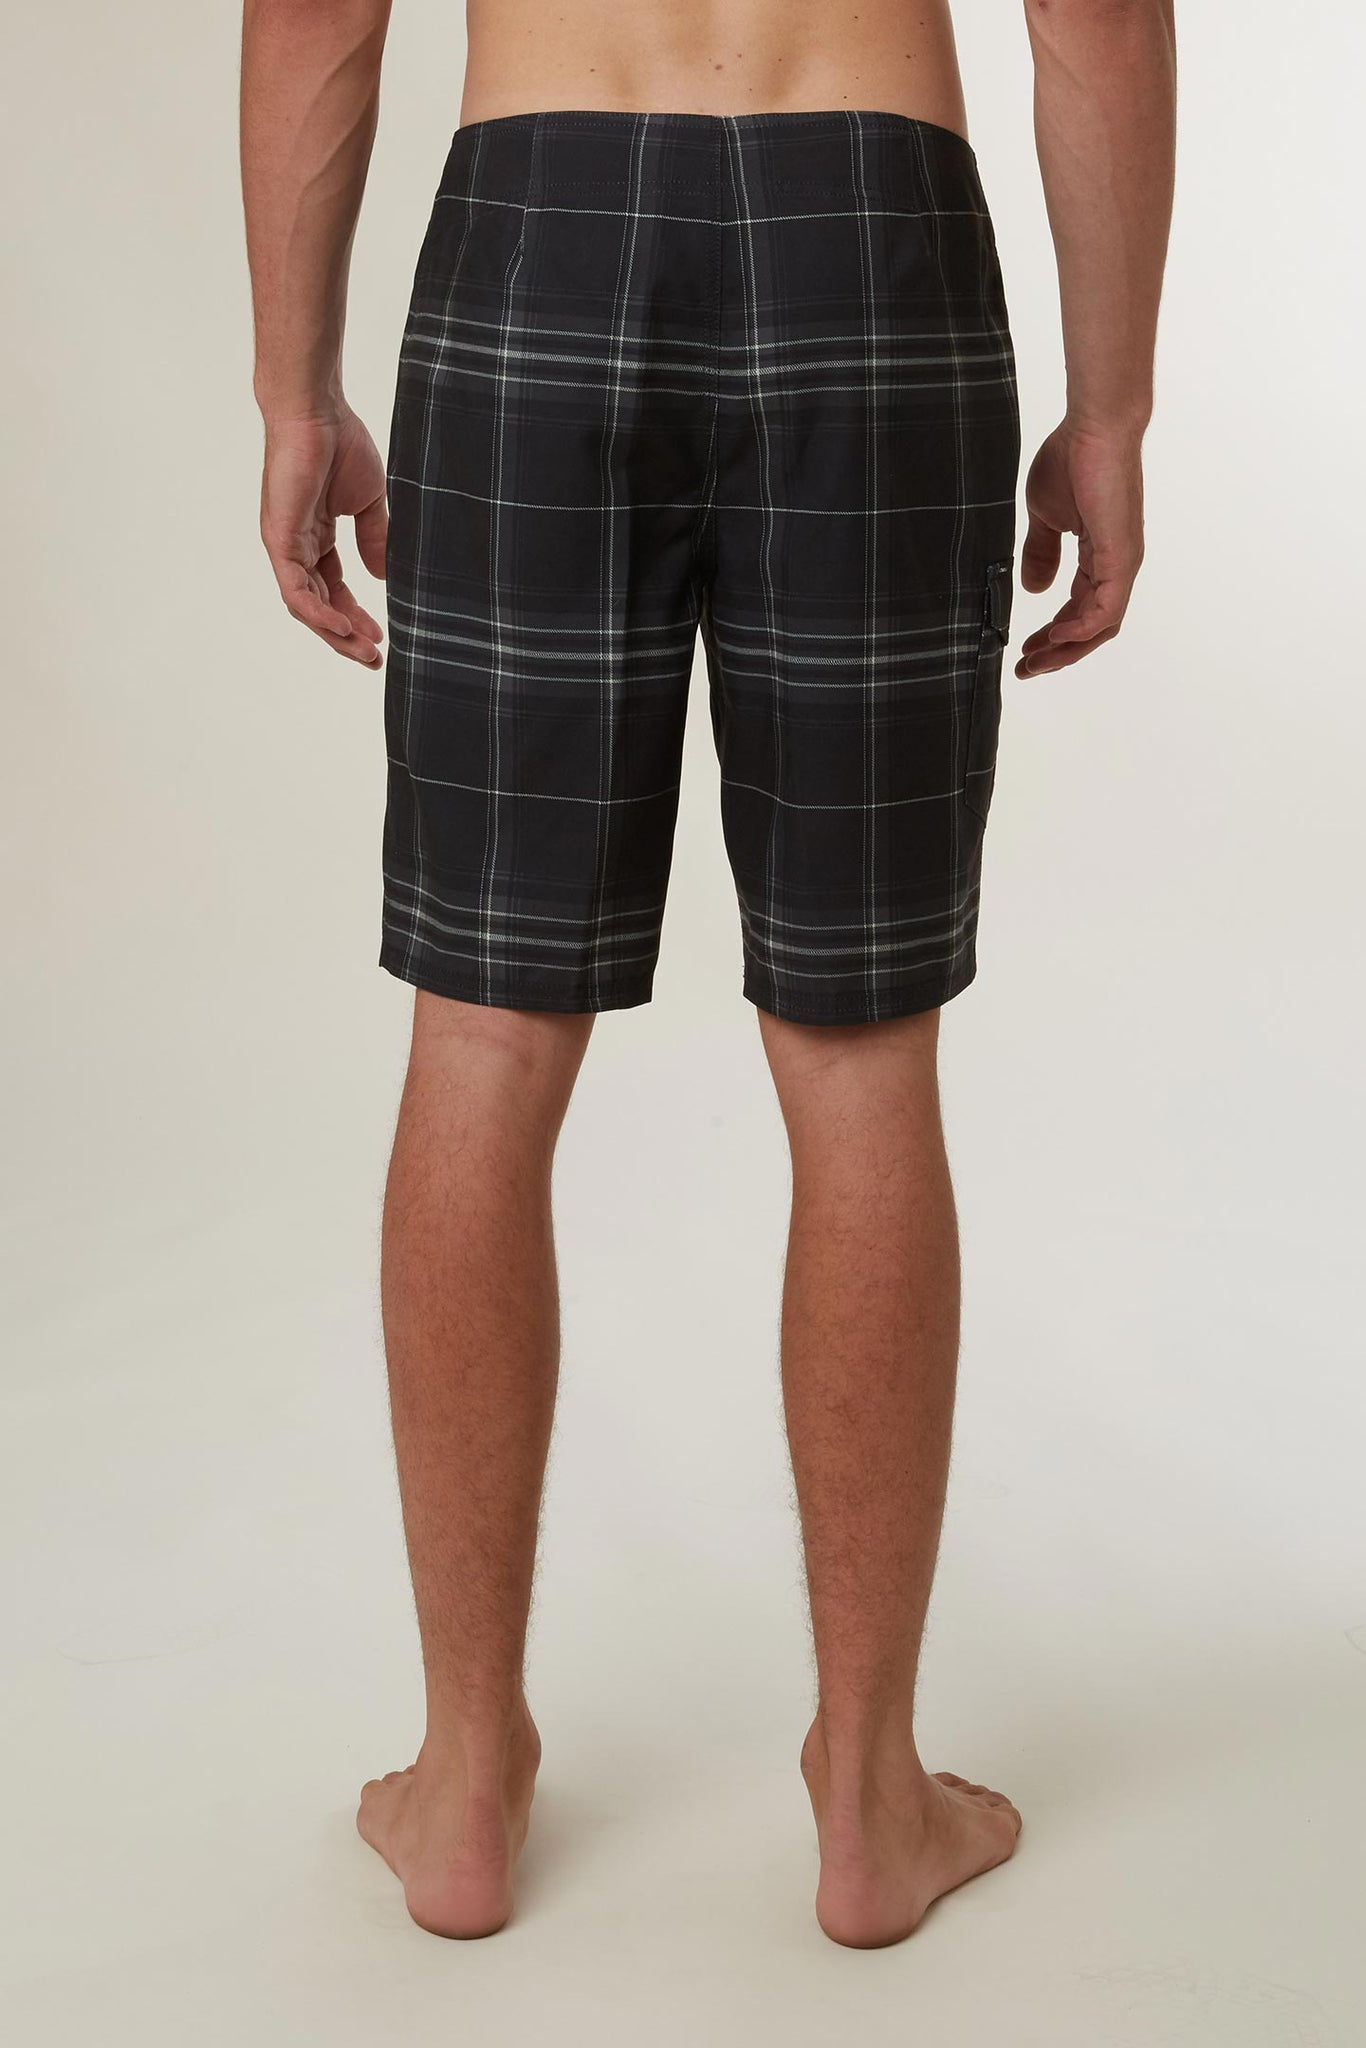 Santa Cruz Plaid Boardshorts - Black | O'Neill